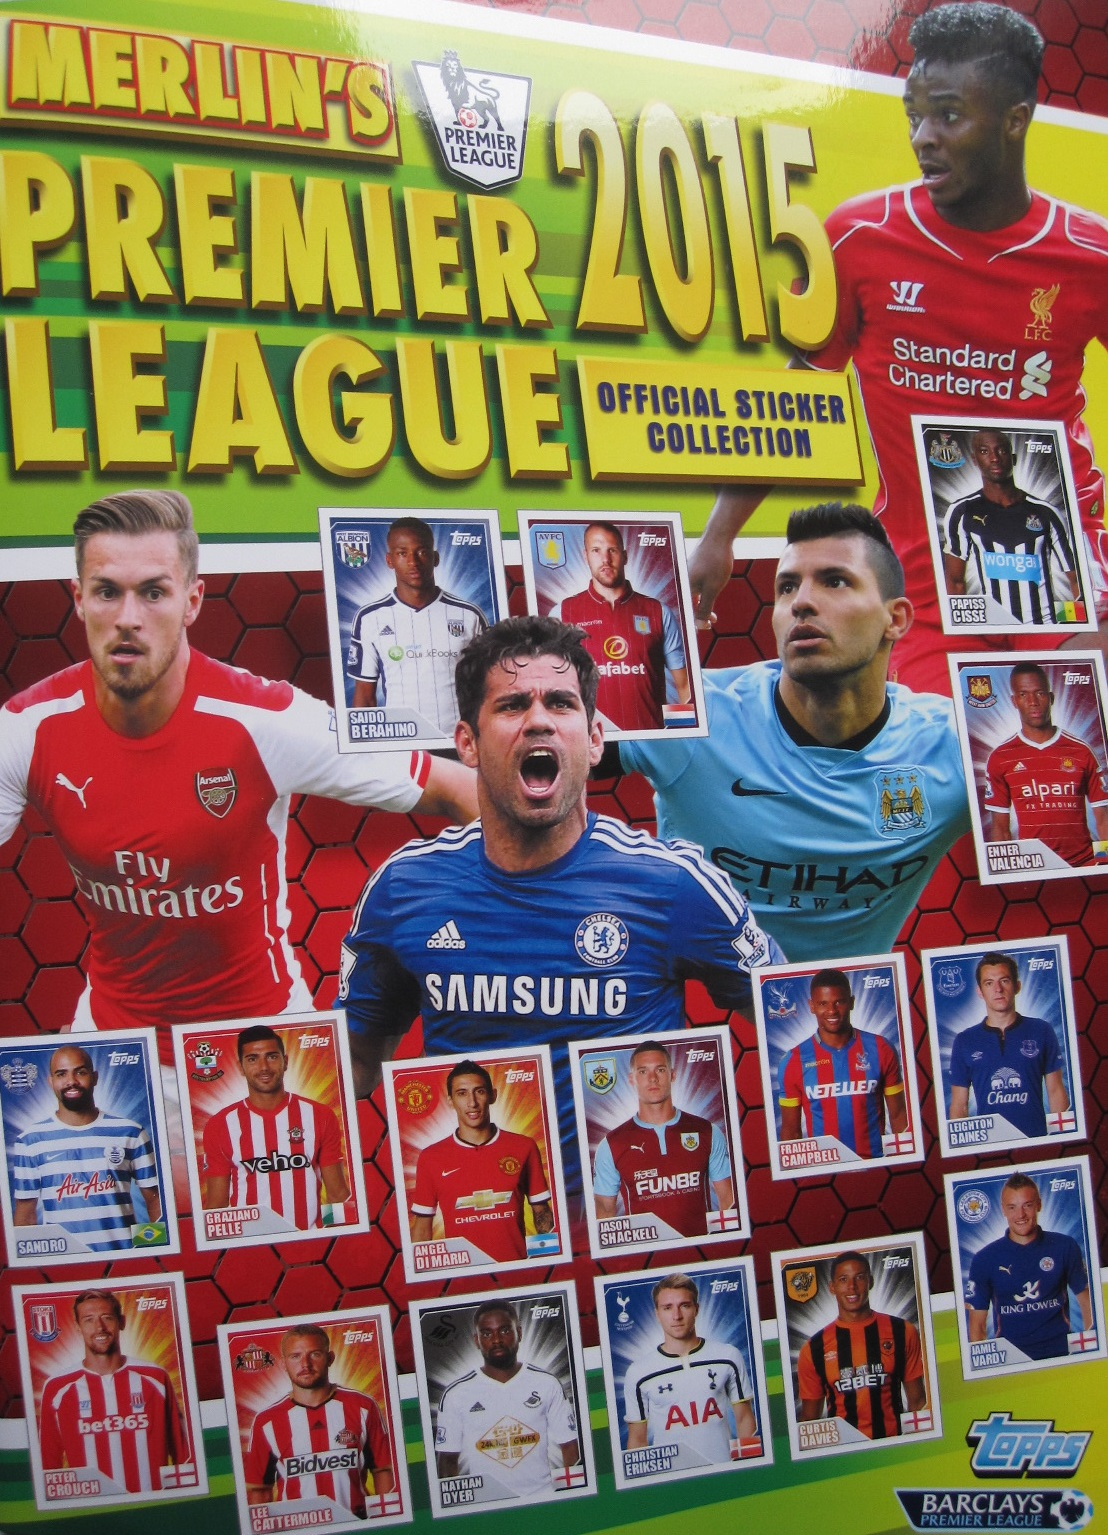 2014-15 Topps Premier League Sticker Collection Checklist